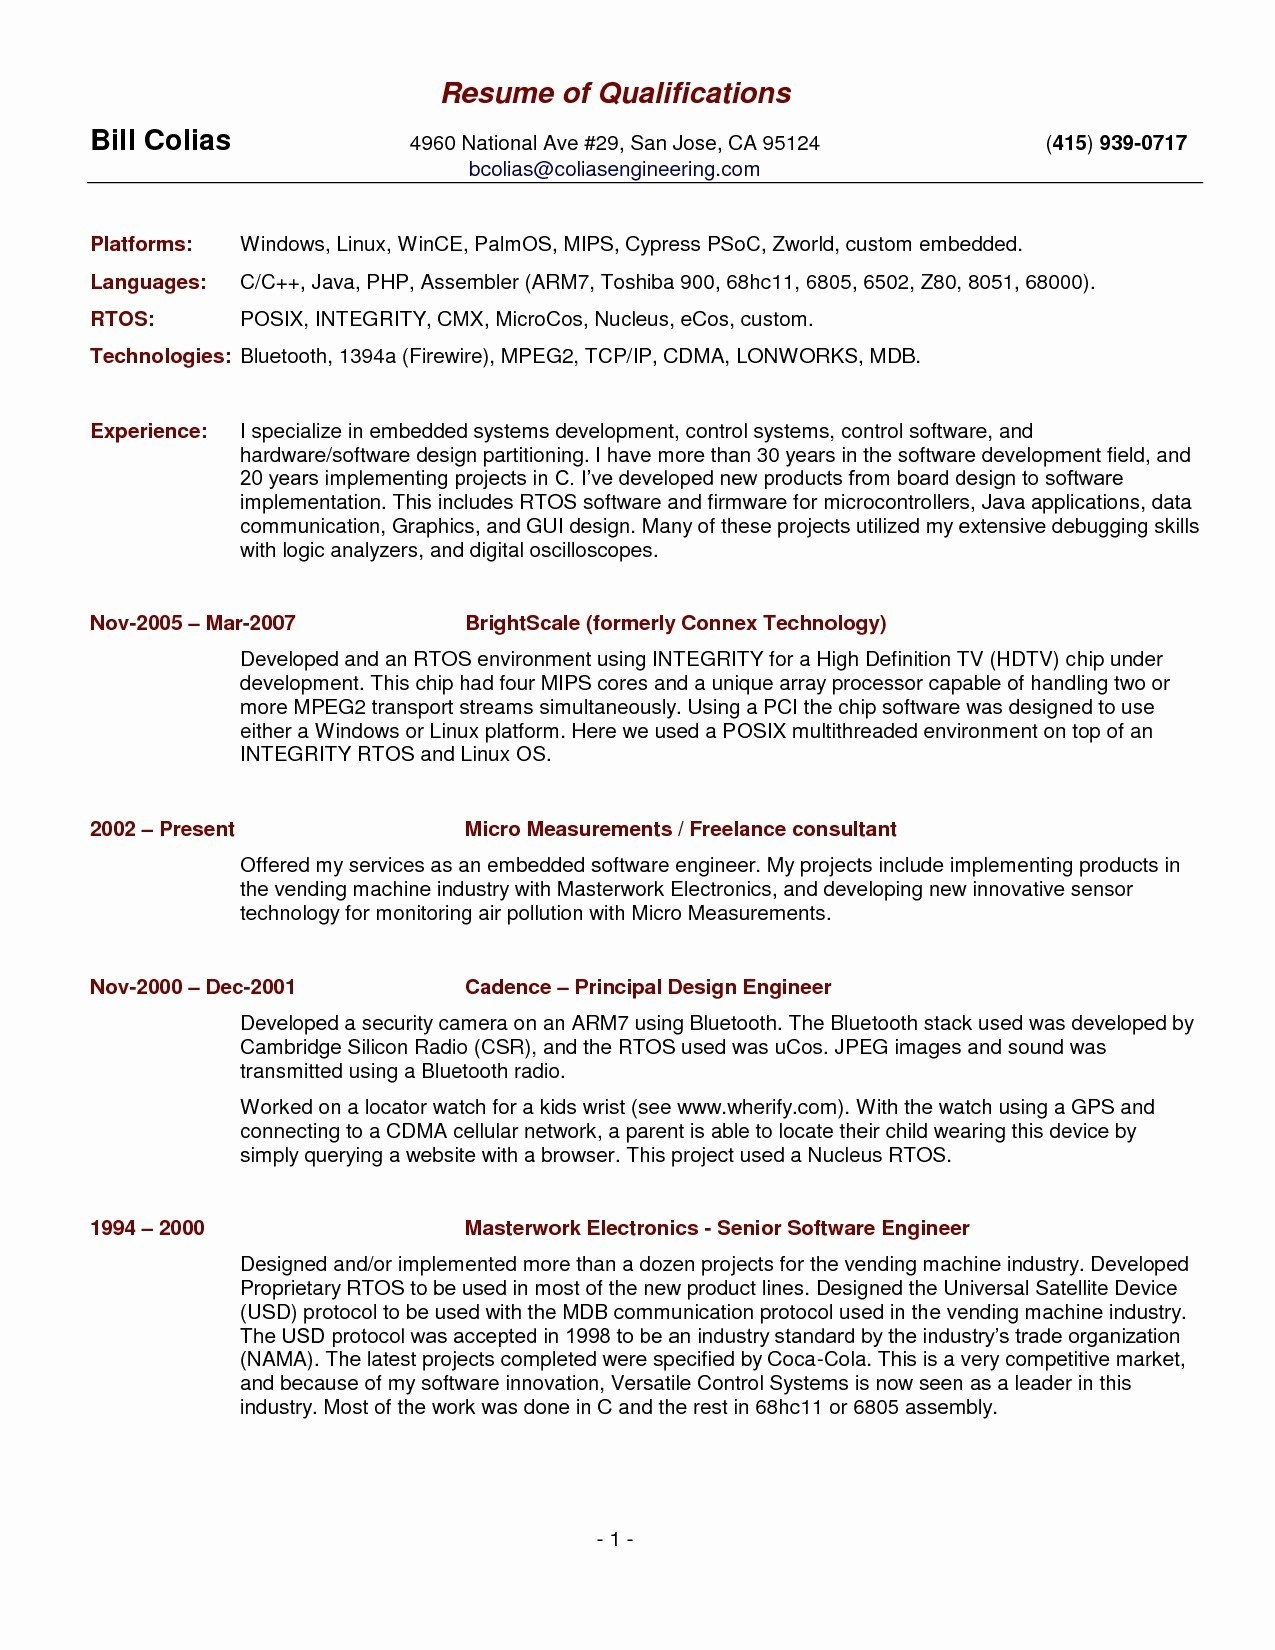 Kellogg Resume Template - Mba Resume Template Awesome Free How to Make Resume format Gallery